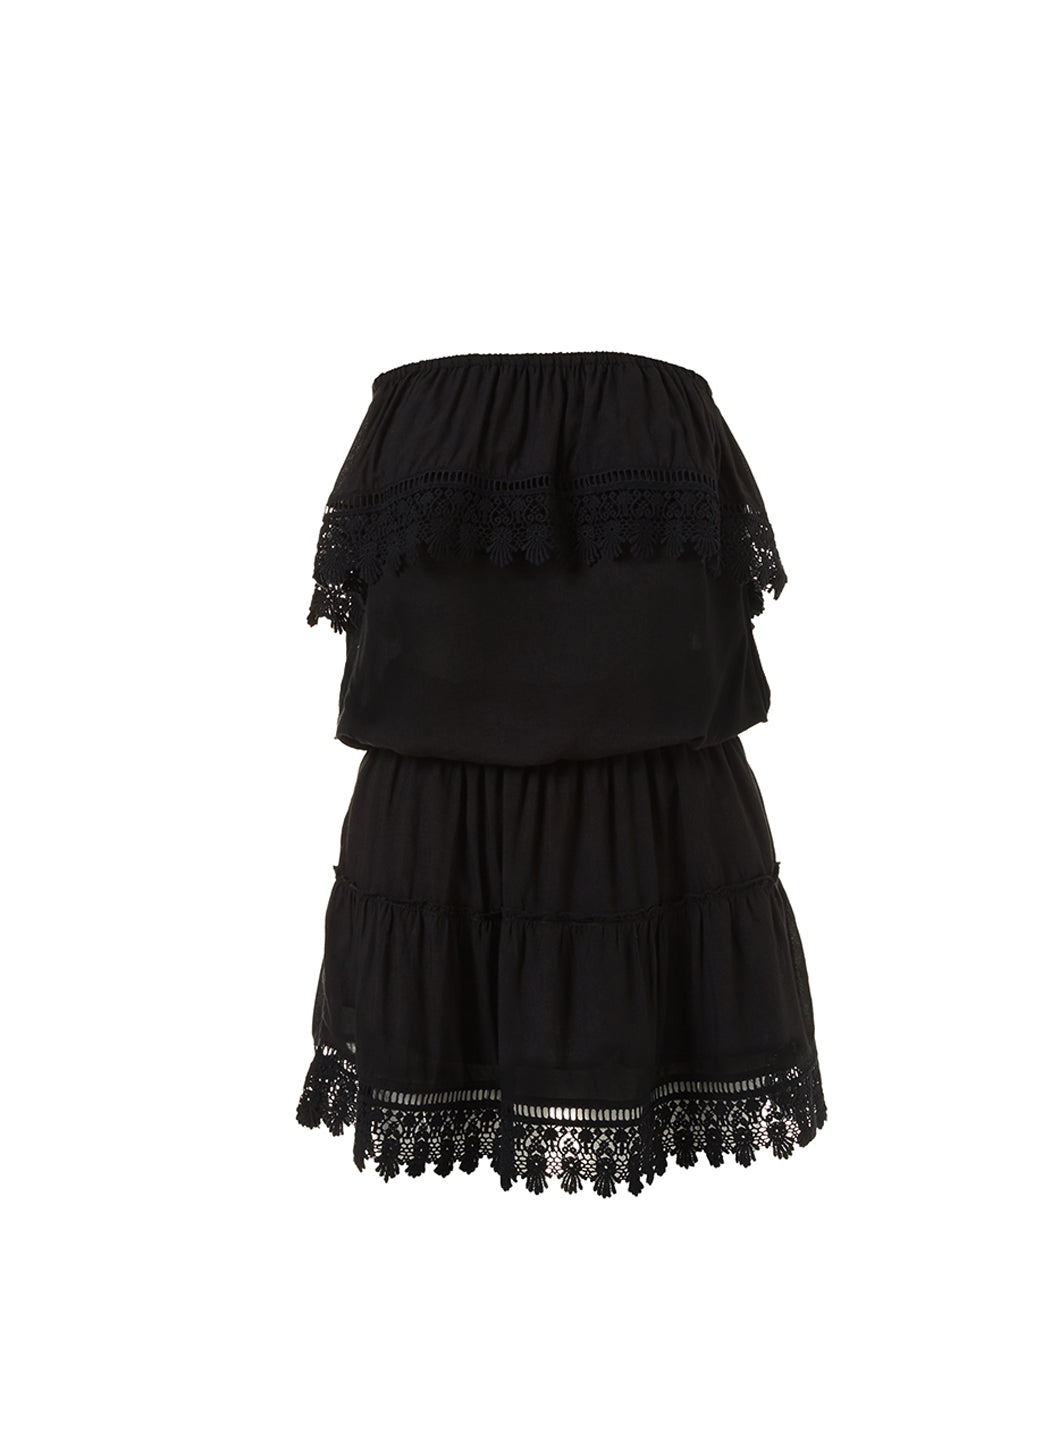 Joy Black Bandeau Embroidered Frill Short Dress - Melissa Odabash Beach Dresses